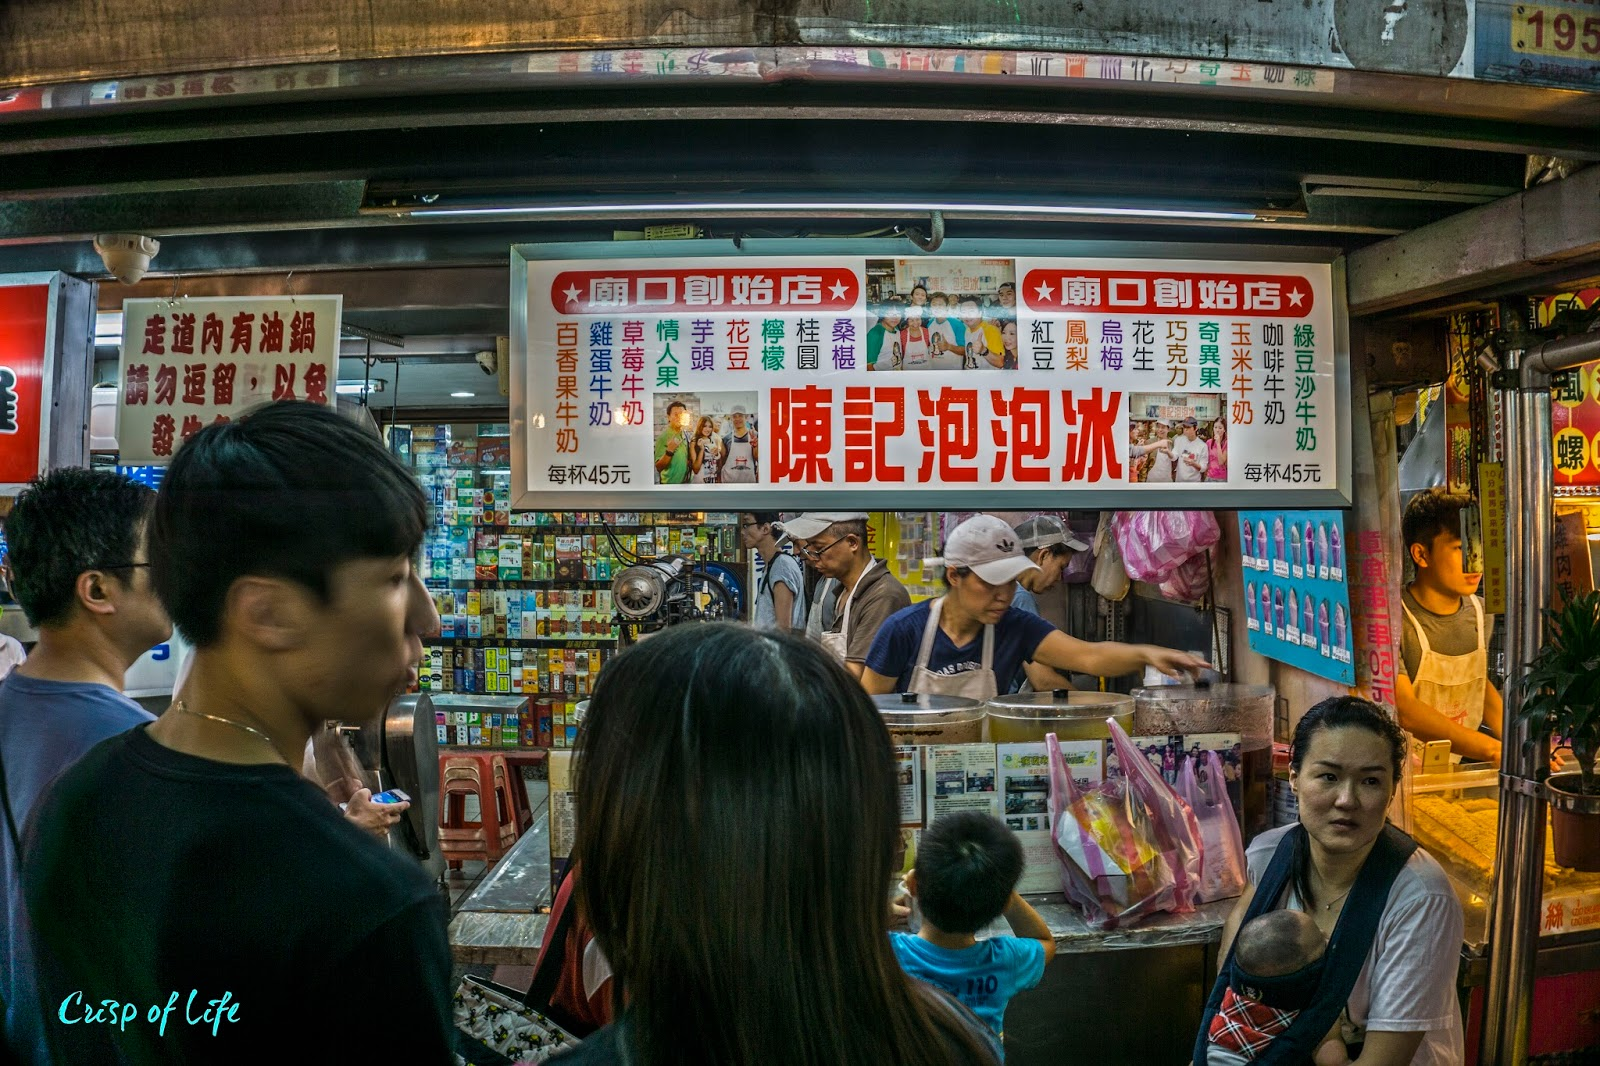 [TAIPEI 台北] Day 5: Keelung Miaokou night market 第五天:基隆庙口夜市